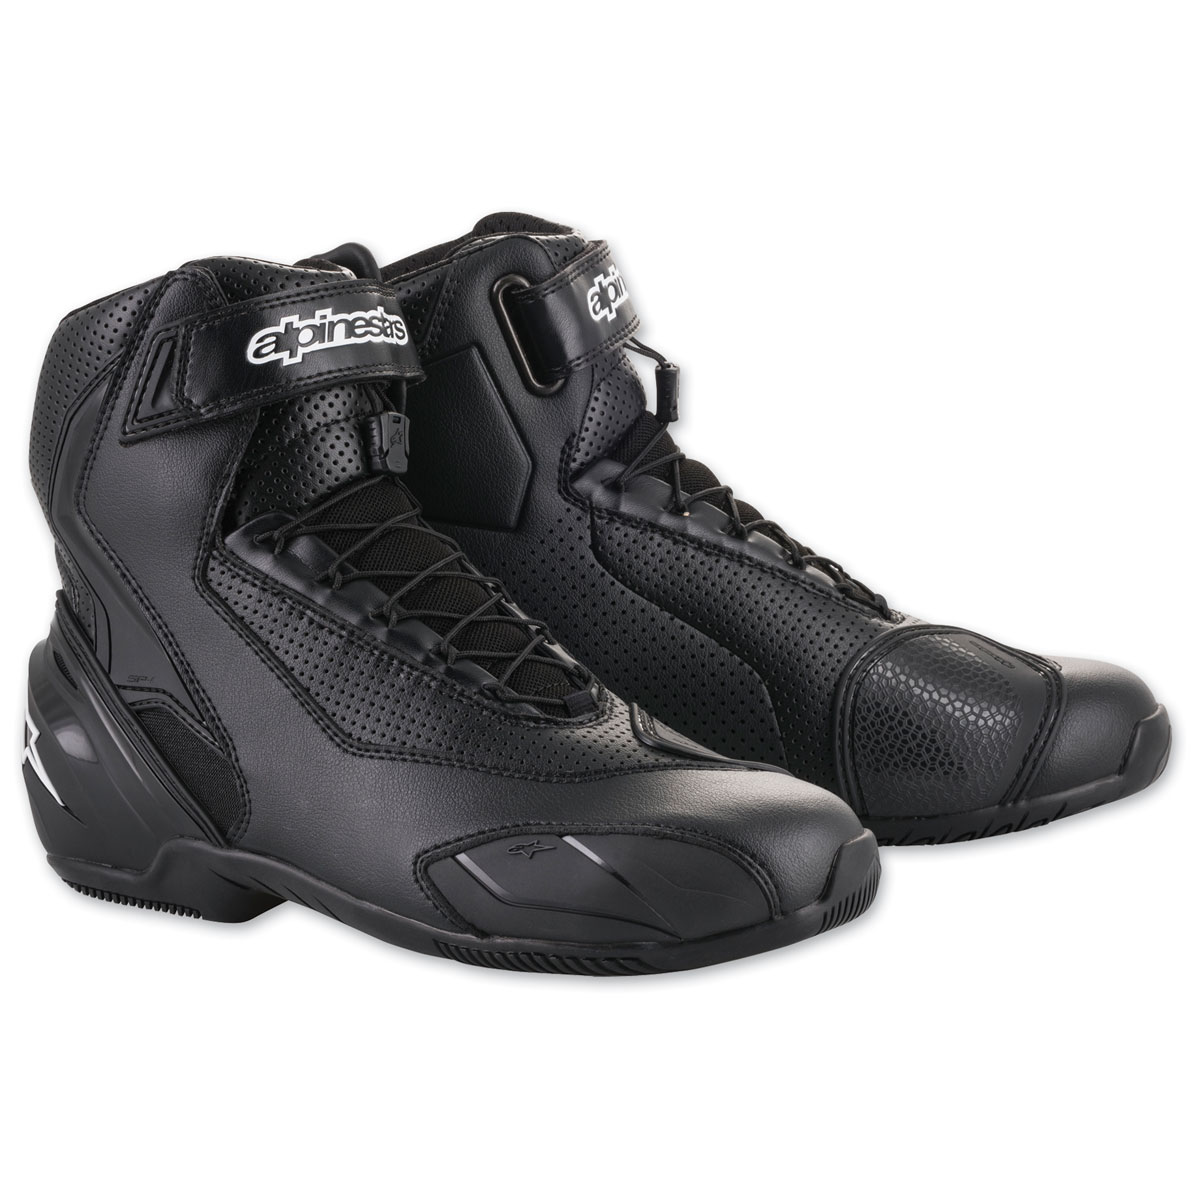 Alpinestars Men's SP-1 v2 Vented Black/Black Boots